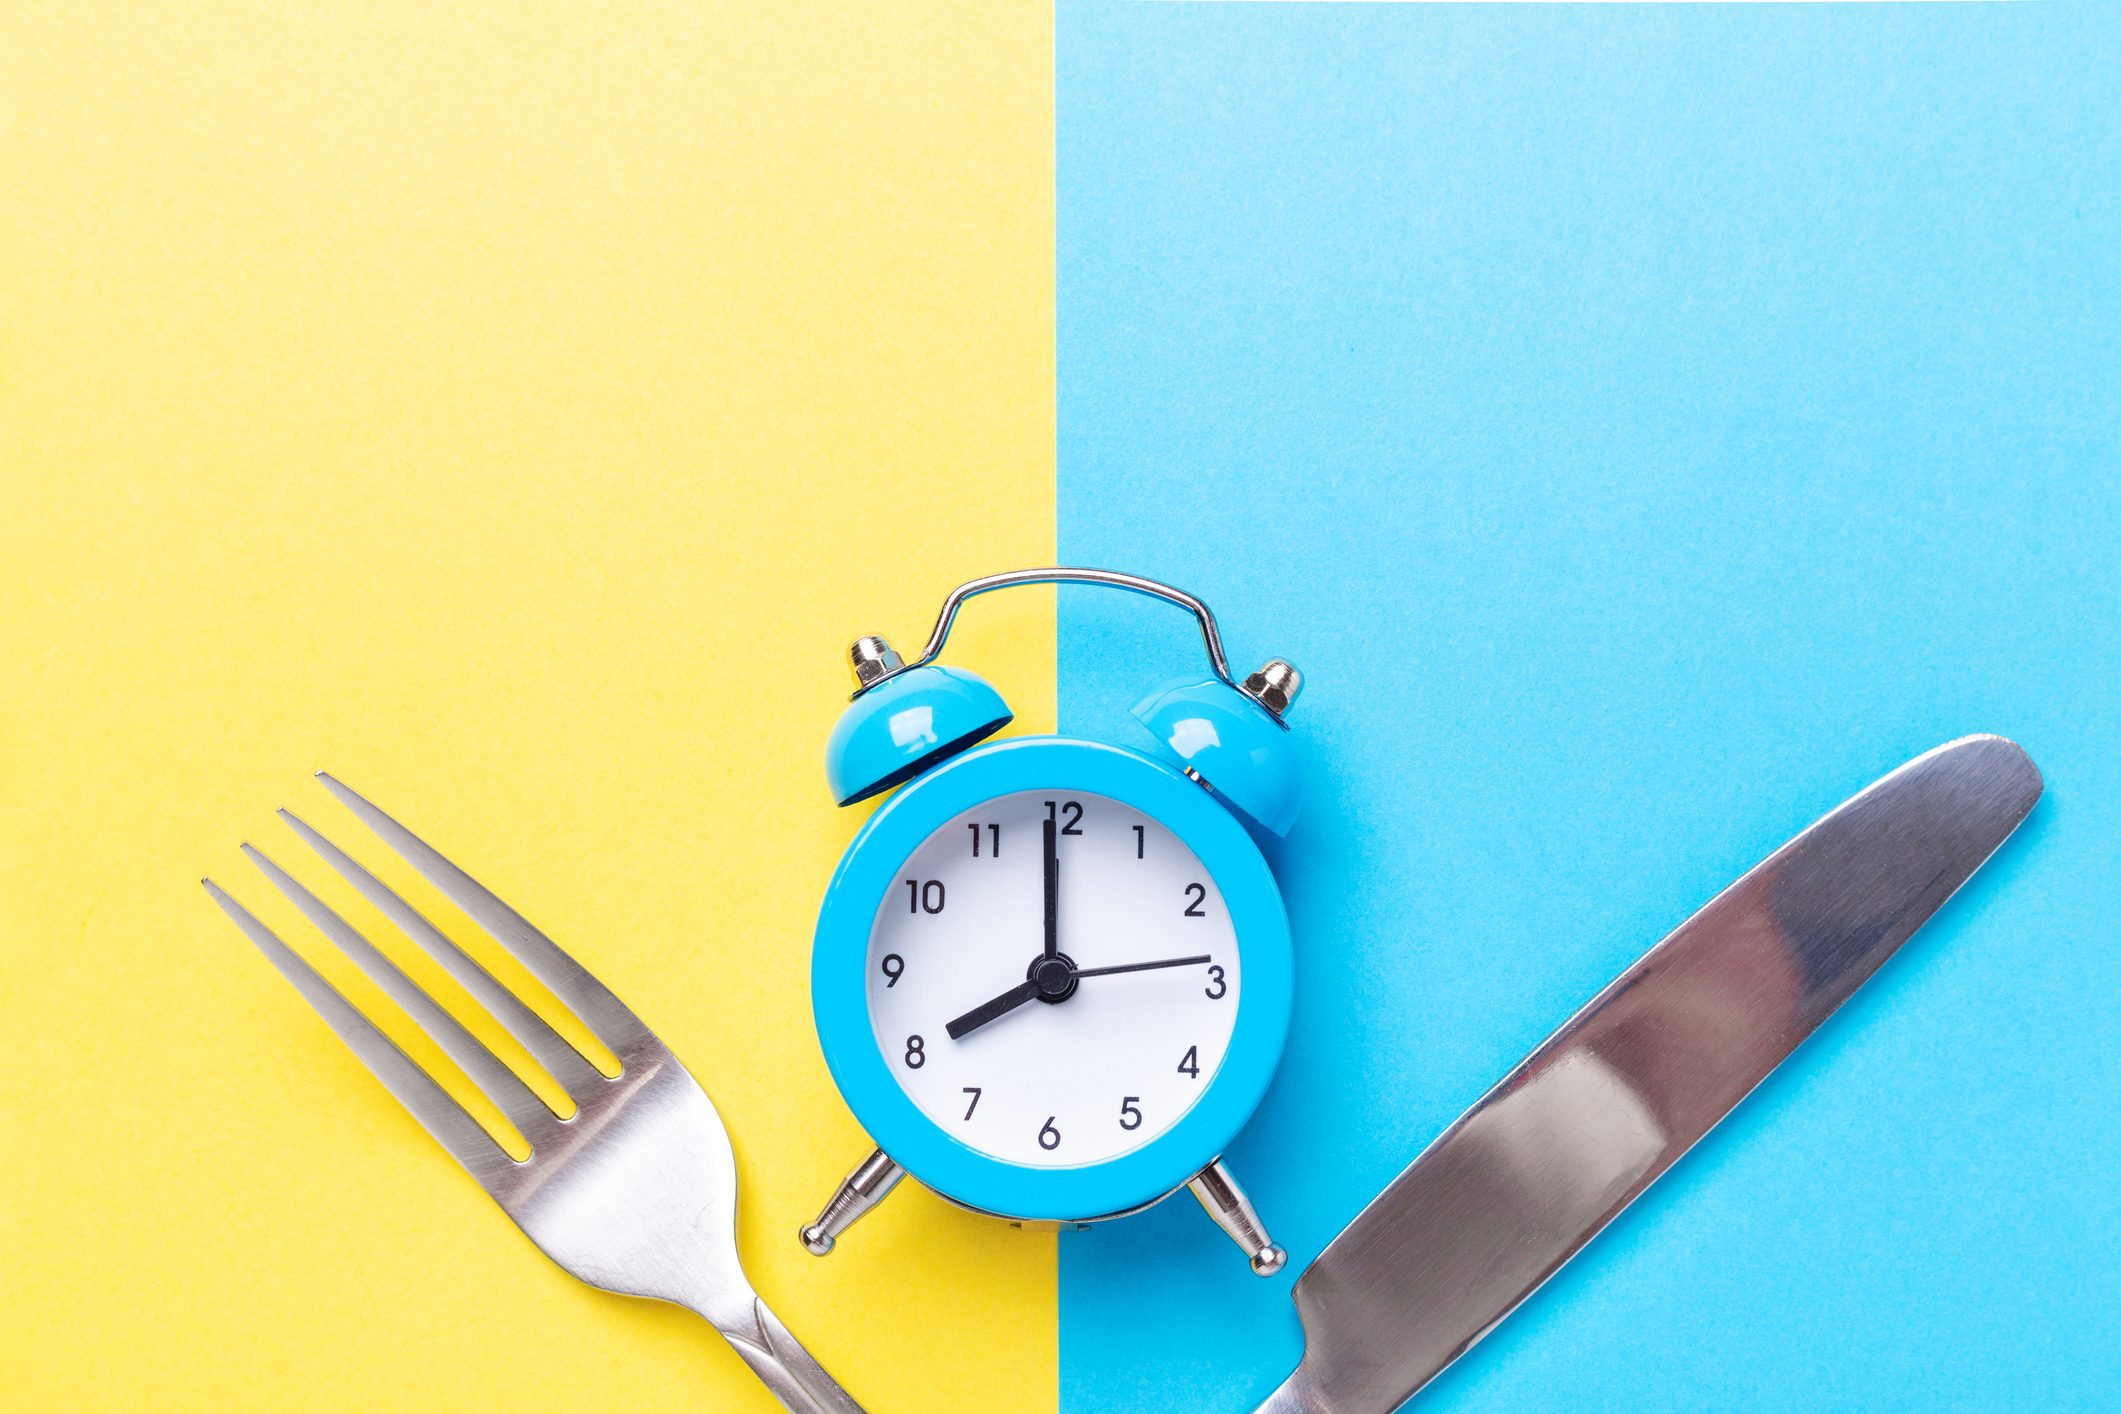 Blue alarm clock, fork, knife on colored paper background. Intermittent fasting concept